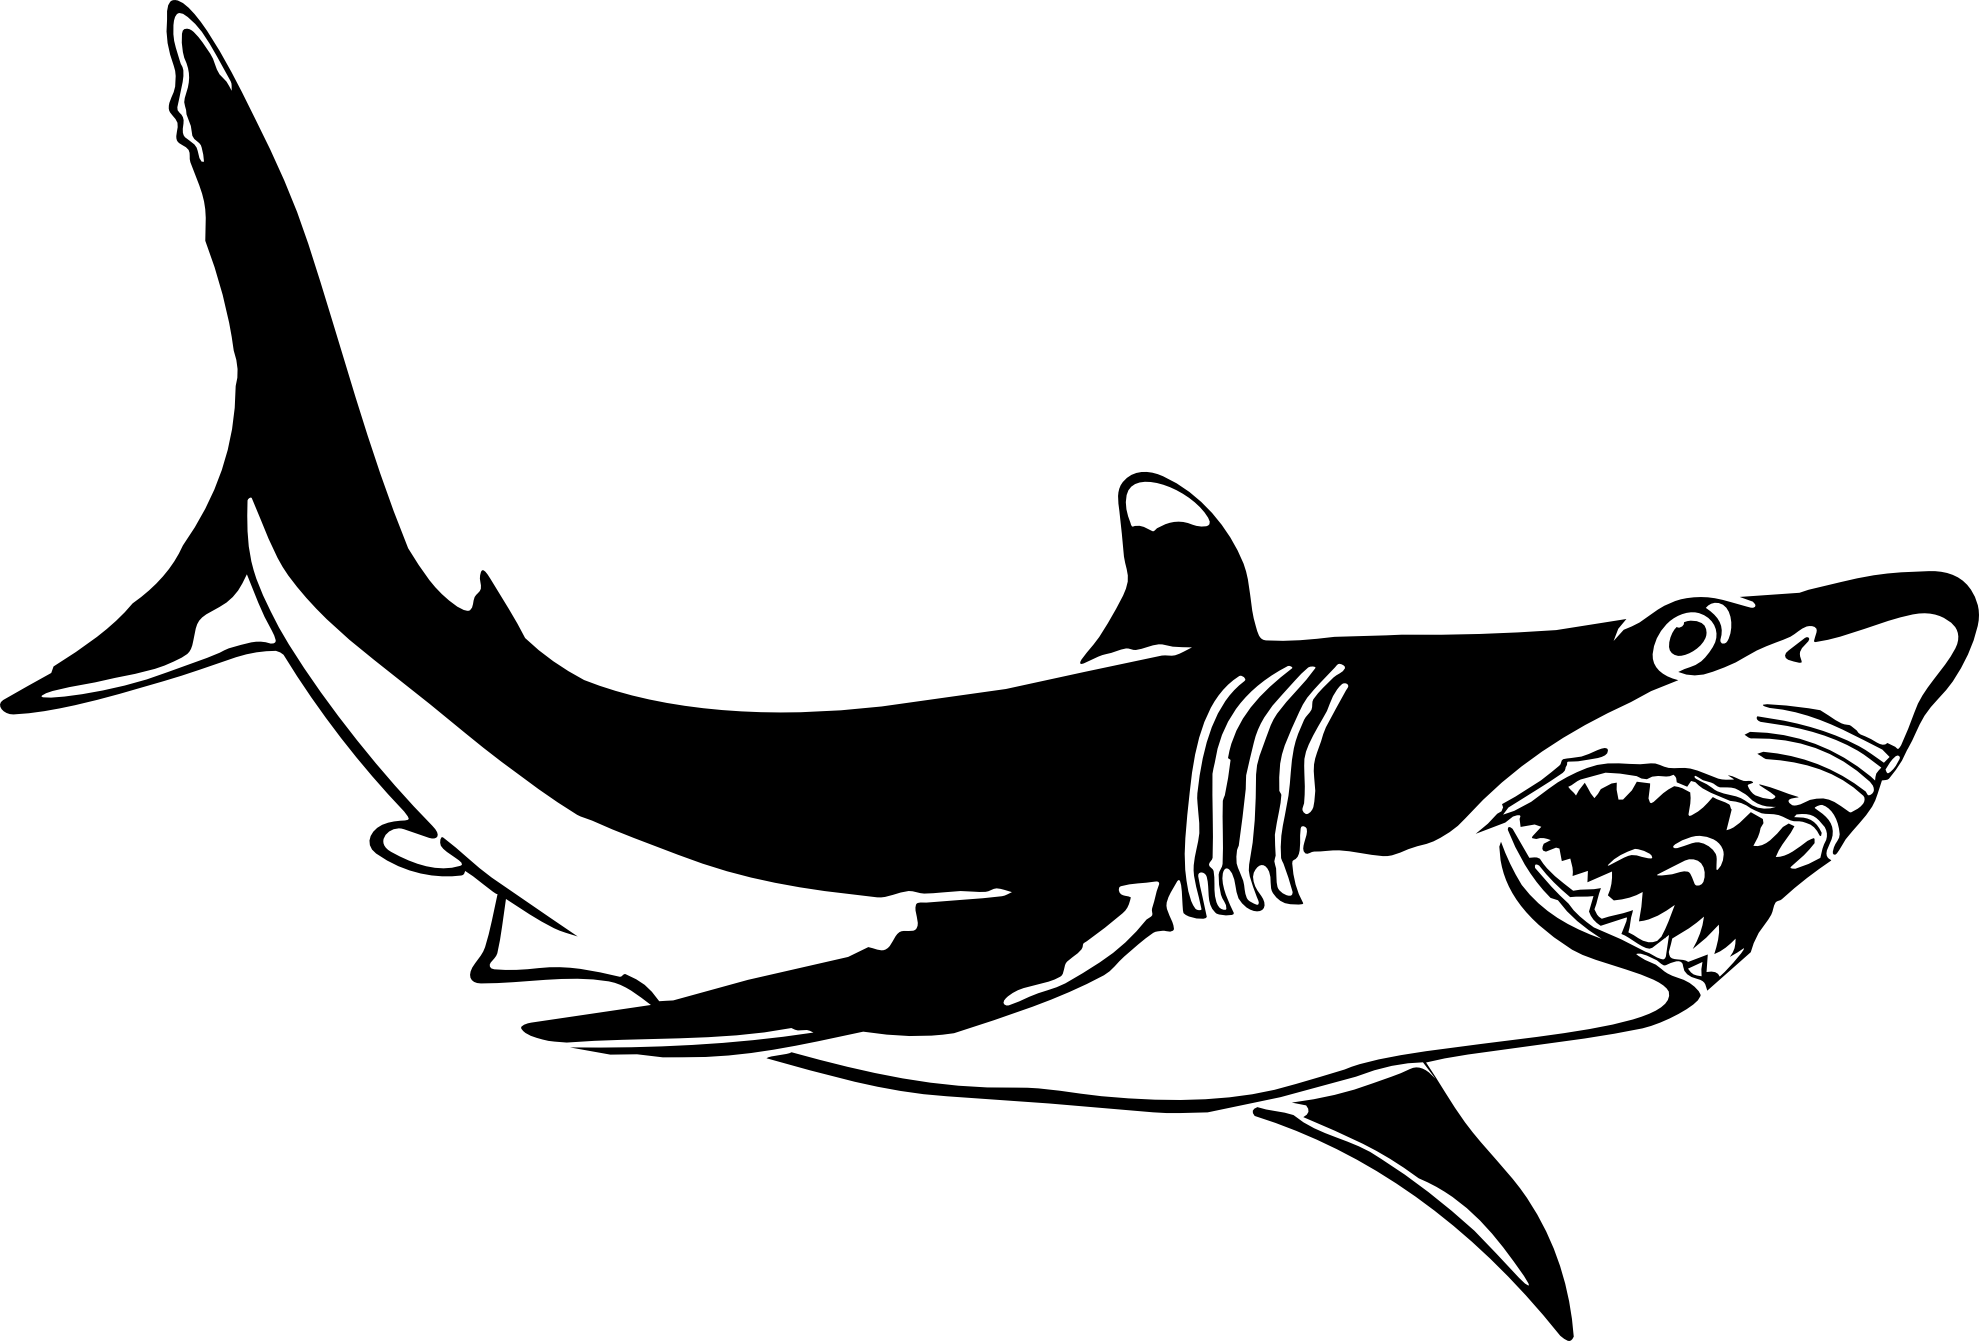 Shark Clipart Black And White Clipart Panda